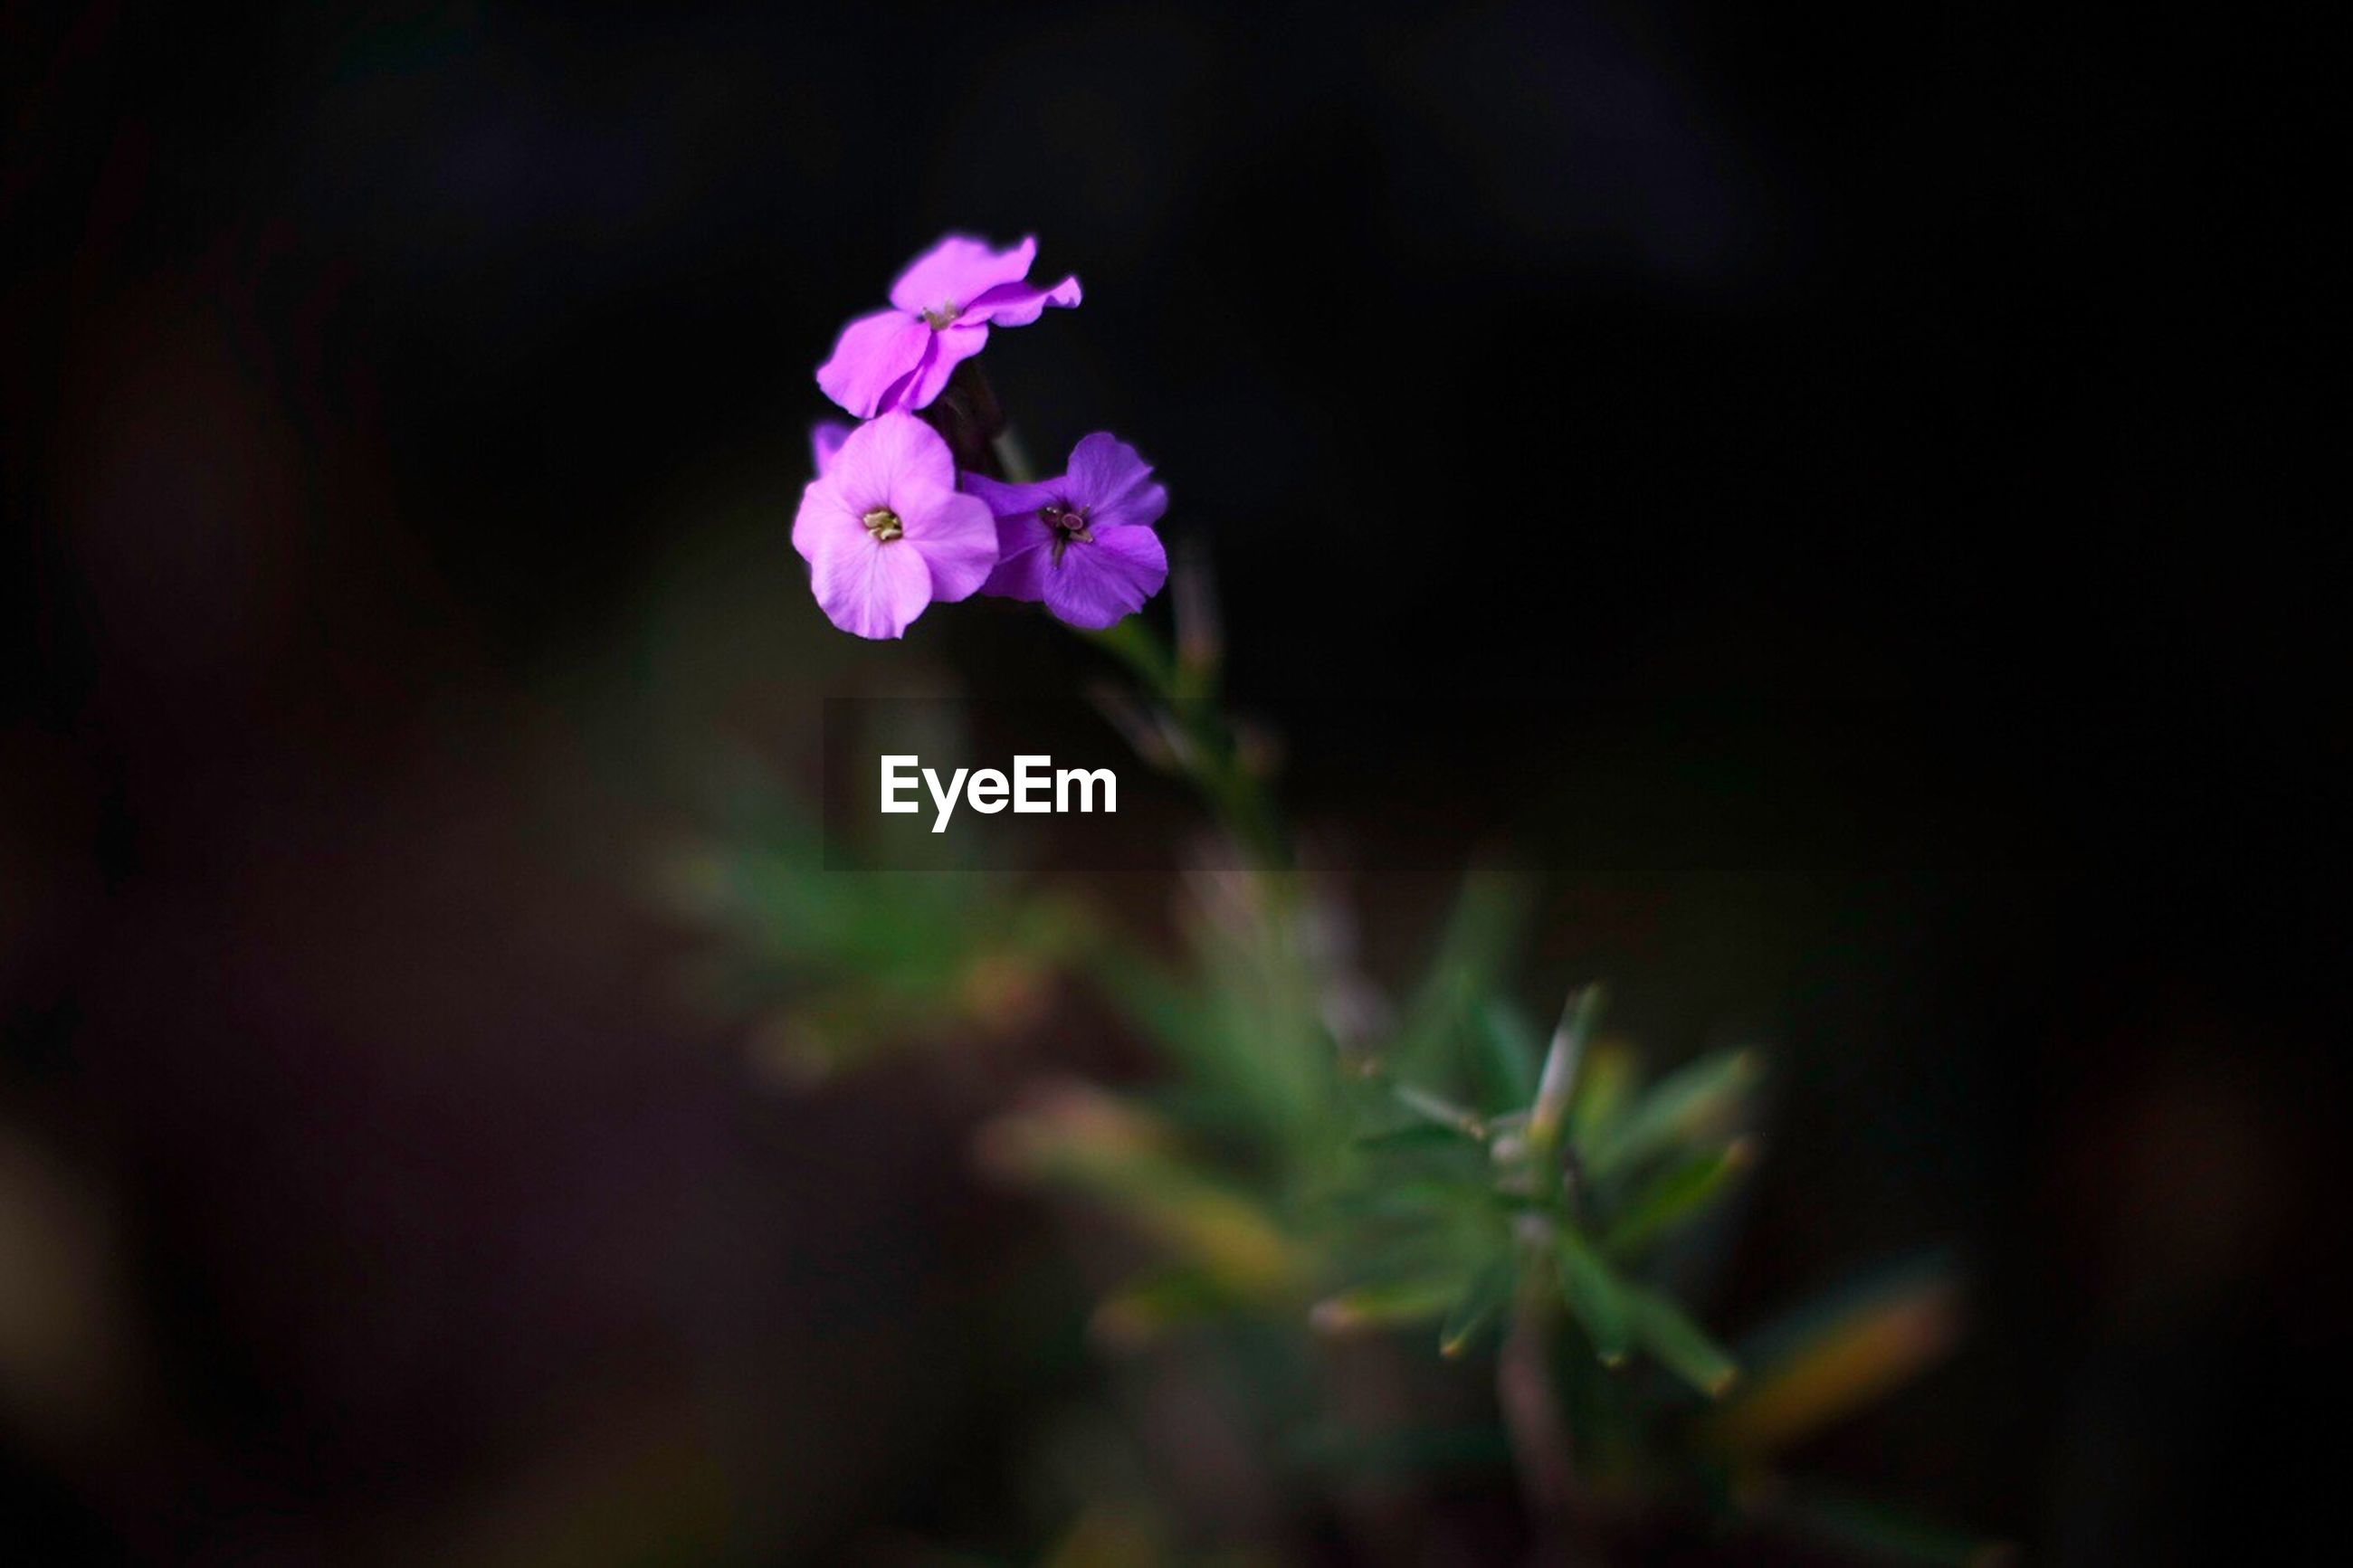 flower, freshness, fragility, growth, petal, beauty in nature, purple, plant, flower head, nature, blooming, close-up, focus on foreground, stem, in bloom, selective focus, blossom, pink color, botany, springtime